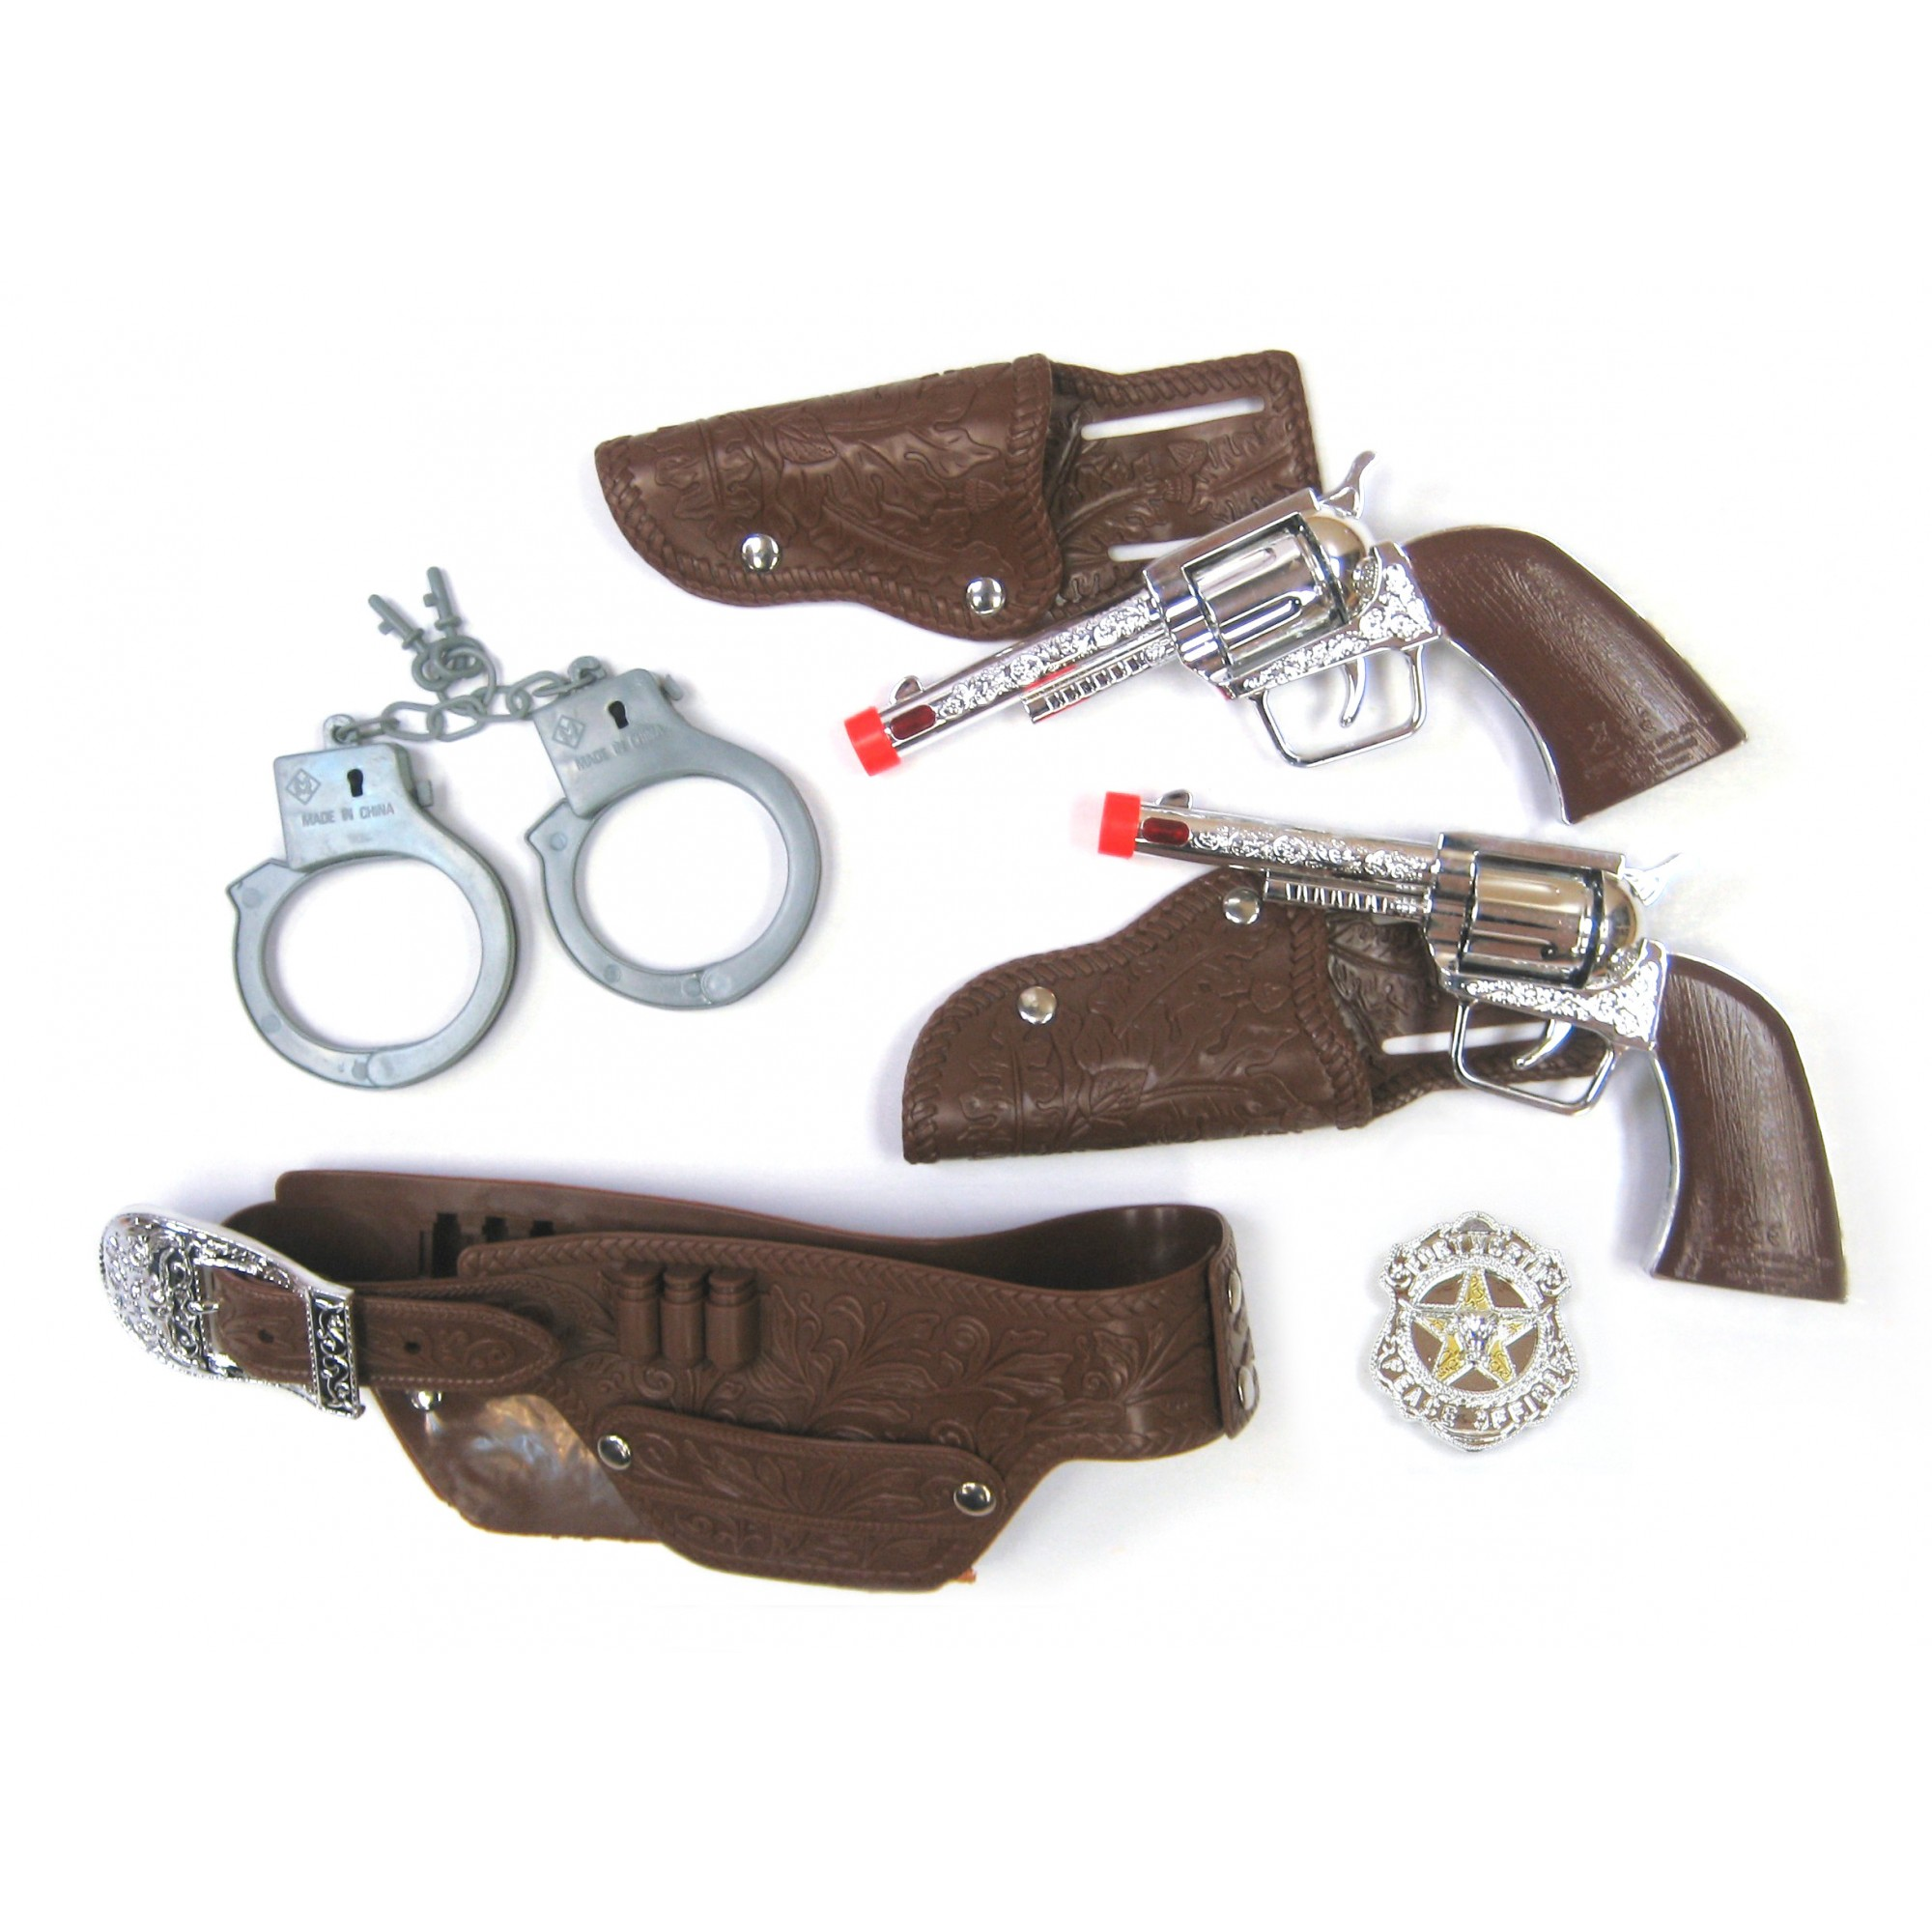 Cow Boy Deluxe Playset W/Revolvers, Belt & Handcuff